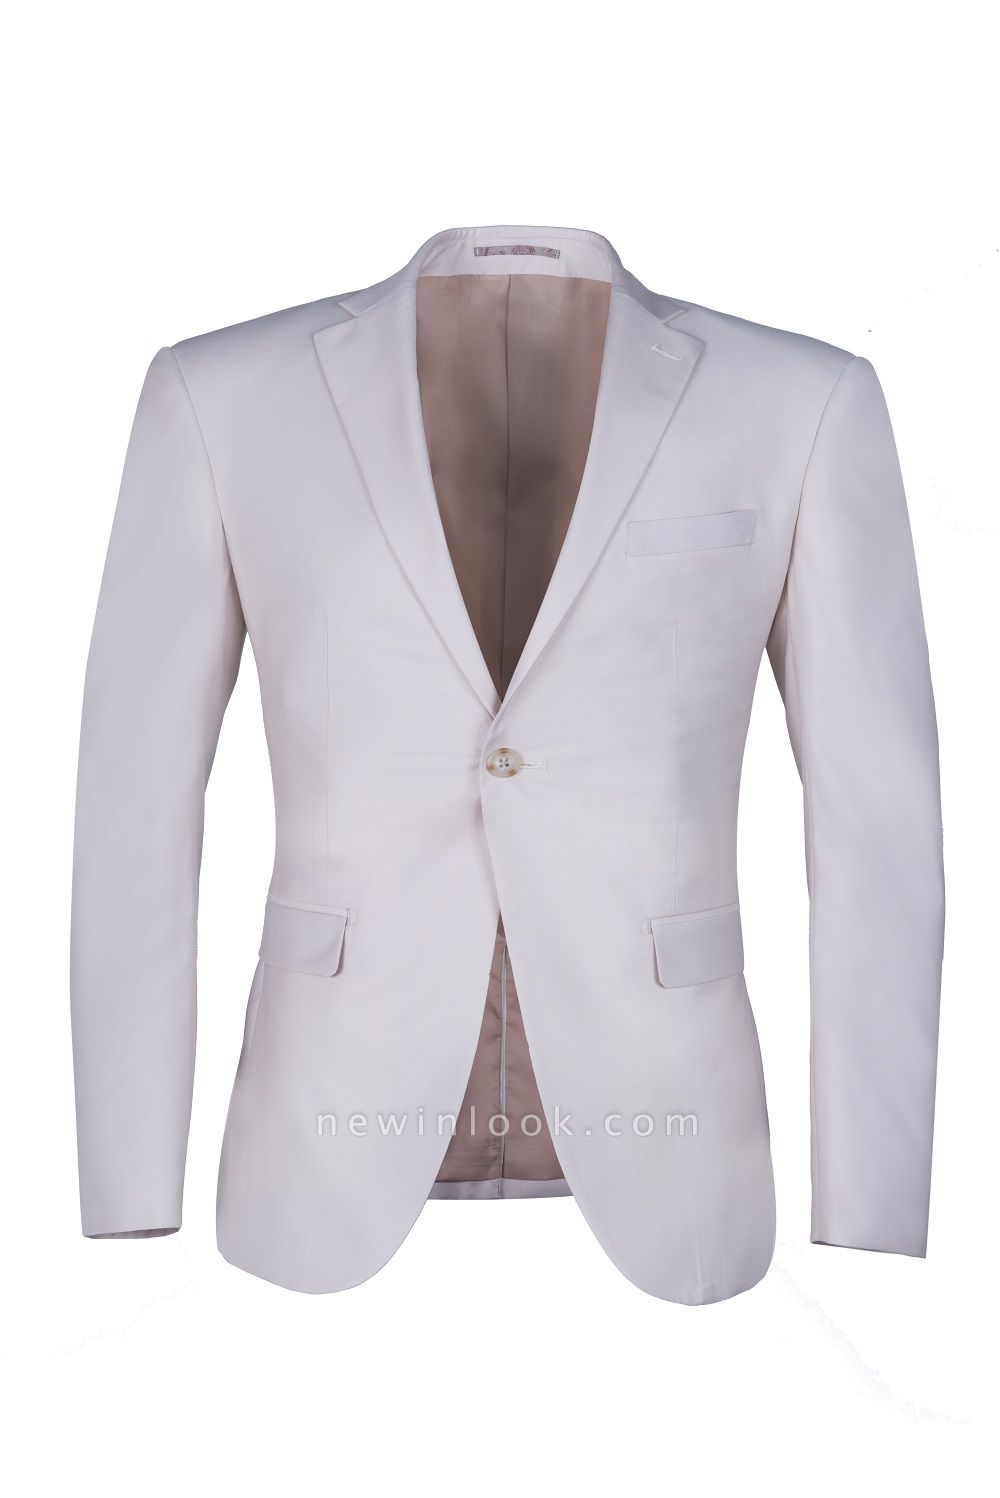 Customize Casual Suit Chambelanes  Ivory Peak Lapel Single Breasted High Quality